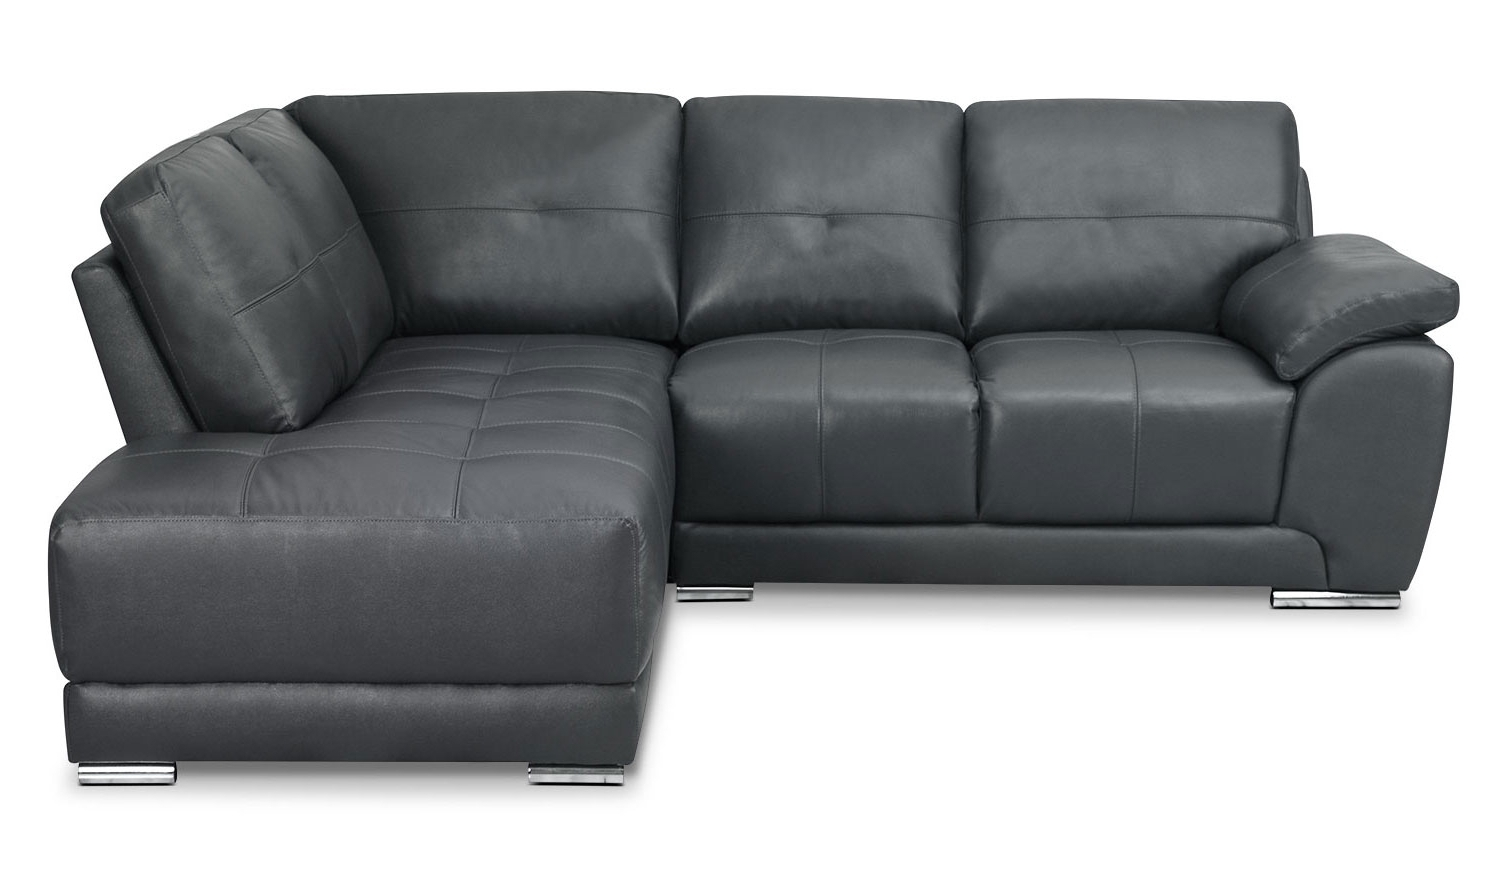 Raymour And Flanigan Sectional Sofas In Trendy Extraordinary The Brick Sofa Bed Sectional 30 On Raymour And (View 16 of 20)